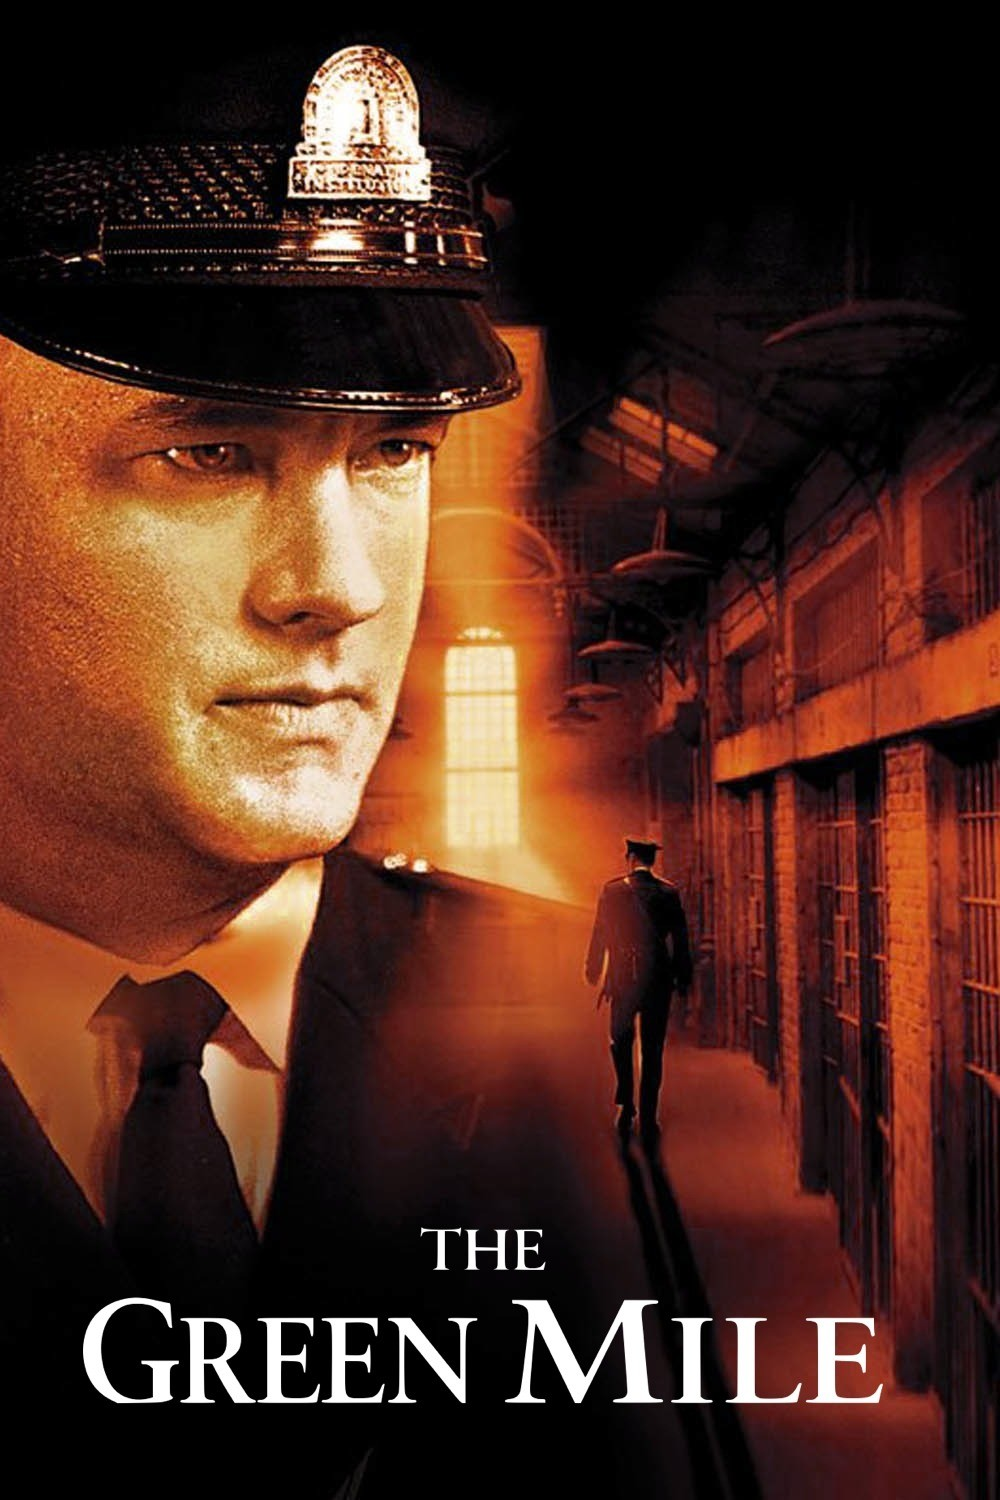 the-green-mile-poster.jpg